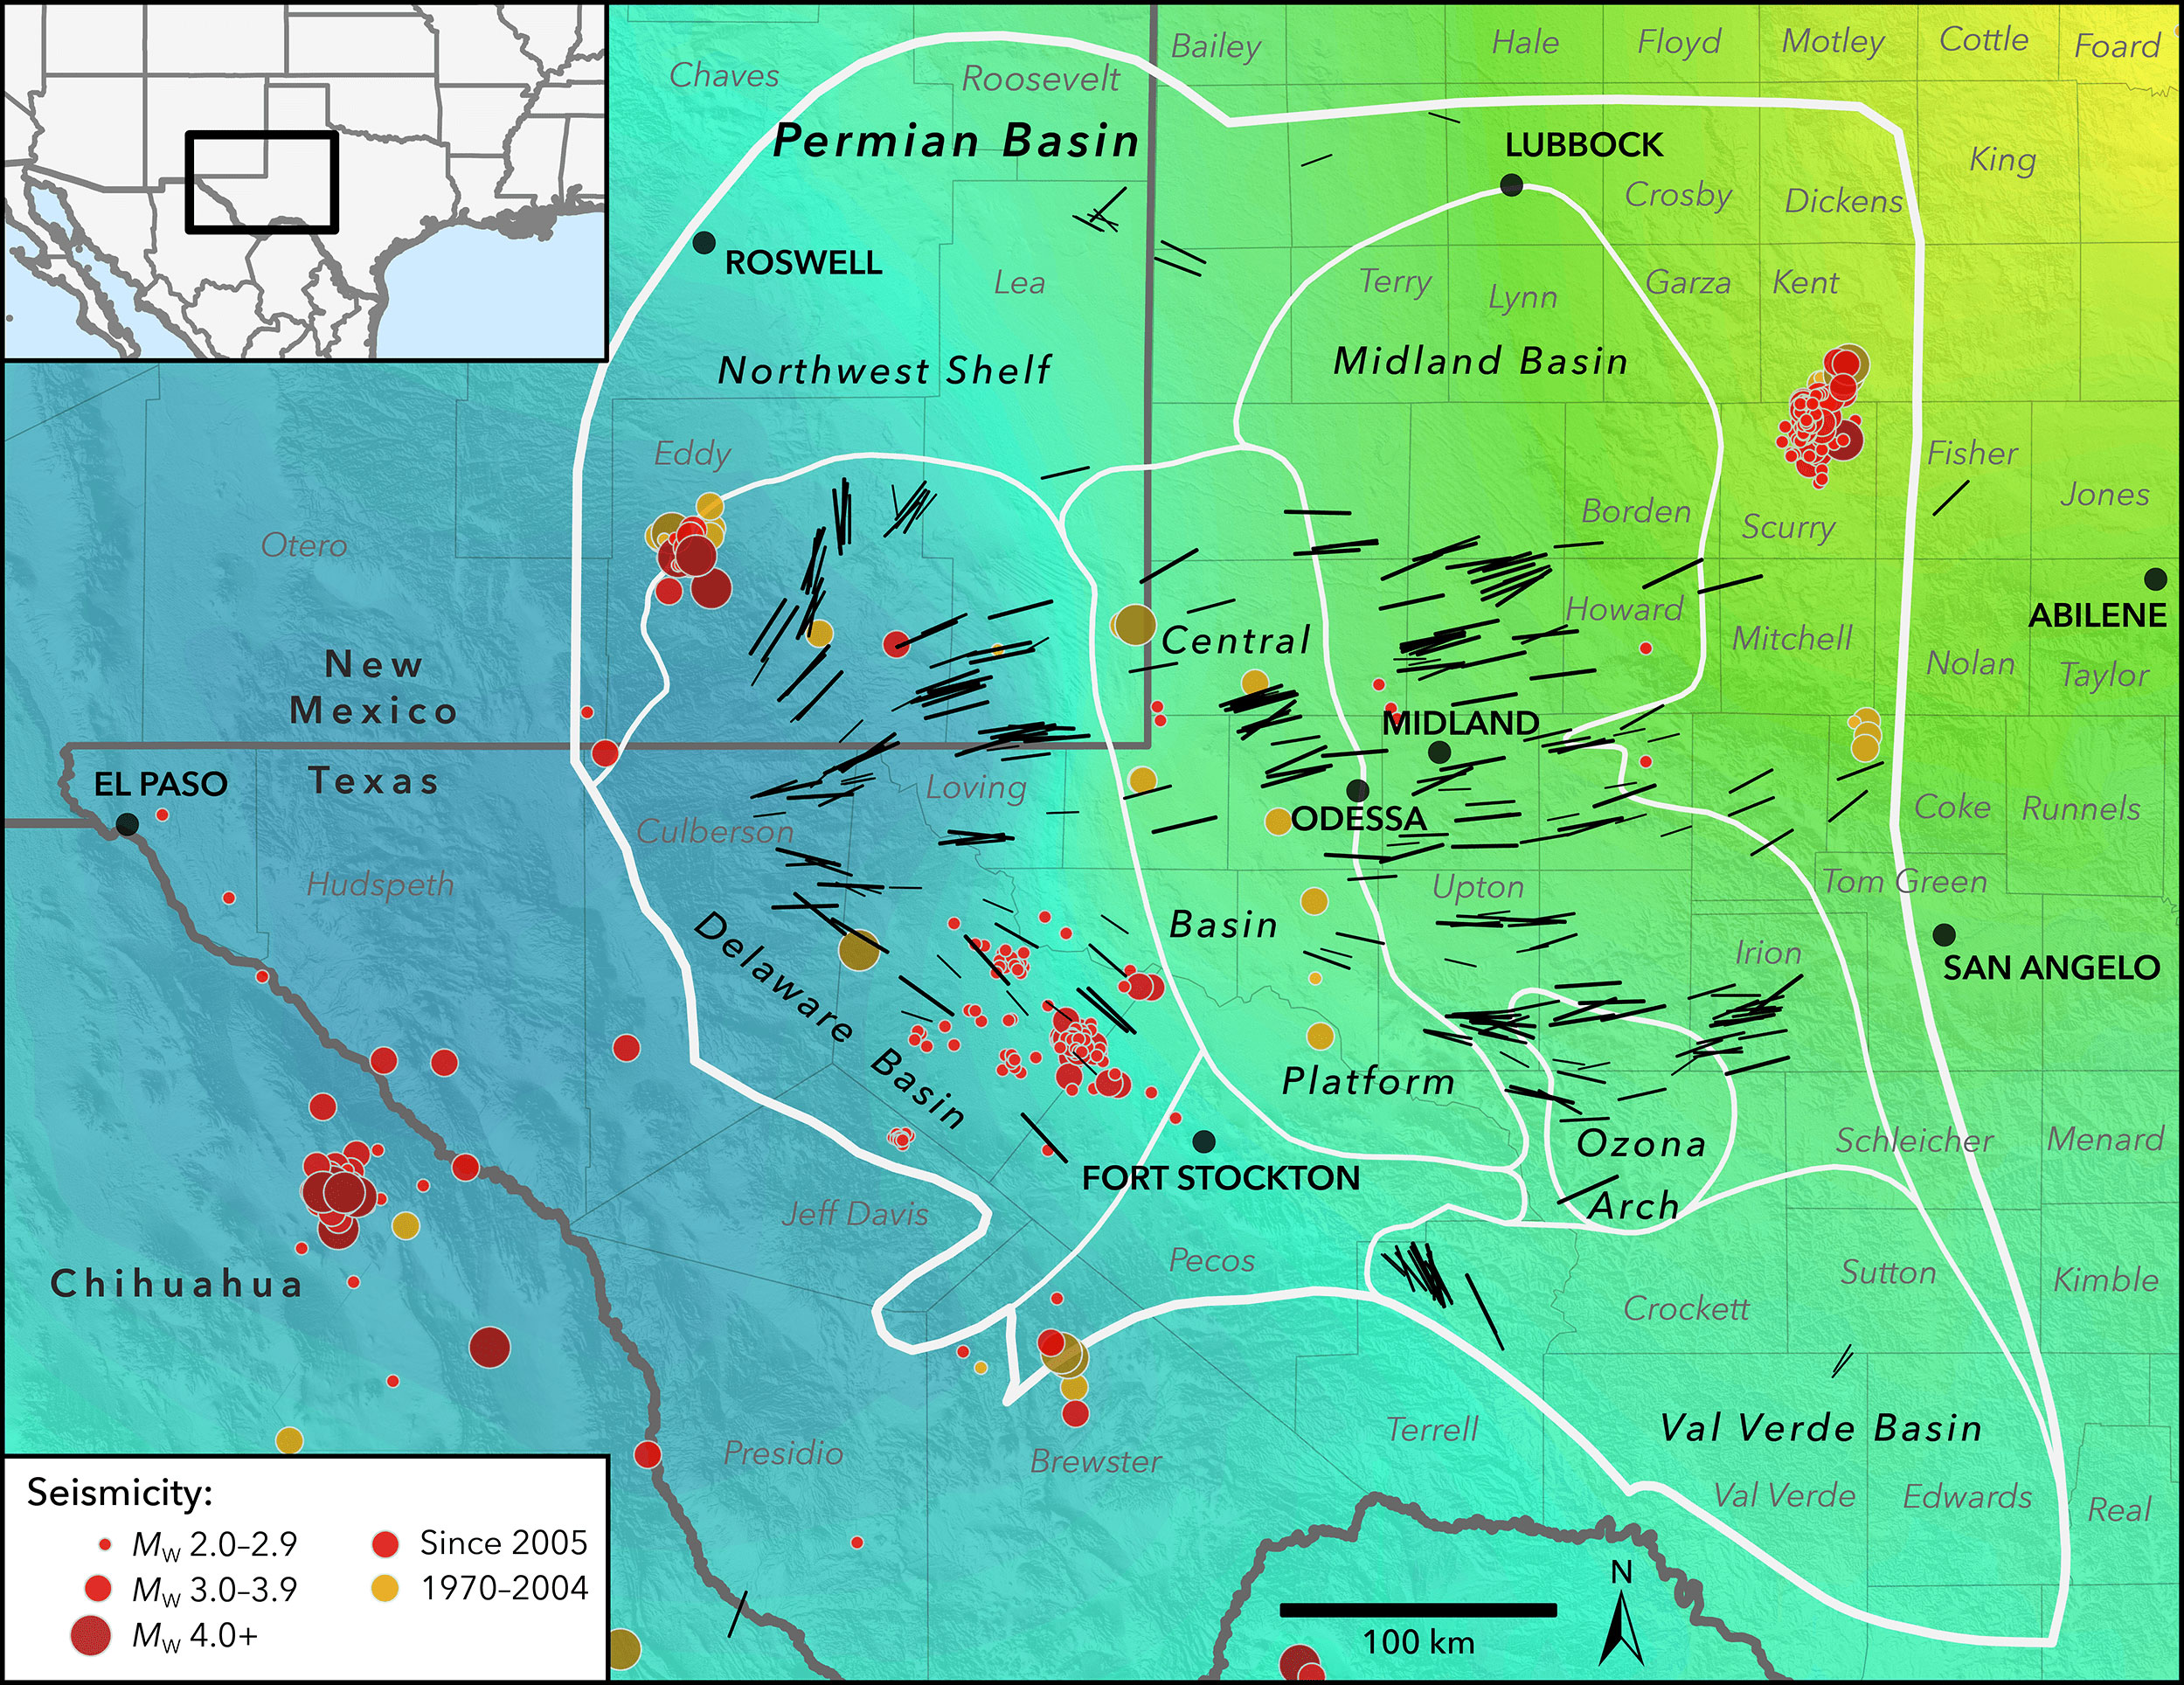 New map of the Earth's stress field in the Permian Basin, west Texas and southeast New Mexico. Black lines represent measured directions of maximum horizontal stress. The colored background represents whether the Earth's crust is extensional or compressional. Blue areas to the west indicate that normal (extensional) faults are potentially active, yellow (mostly out of view to the northeast) represents strike-slip faulting (more compressional), and green means that both normal and strike-slip faults are potentially active. Earthquake locations are shown as colored dots. In recent years, several new clusters of earthquakes (red dots) have occurred in the southern Delaware Basin, near the town of Fort Stockton, and another cluster has occurred near Midland. In contrast, older events (orange dots) are concentrated on the Central Basin Platform.